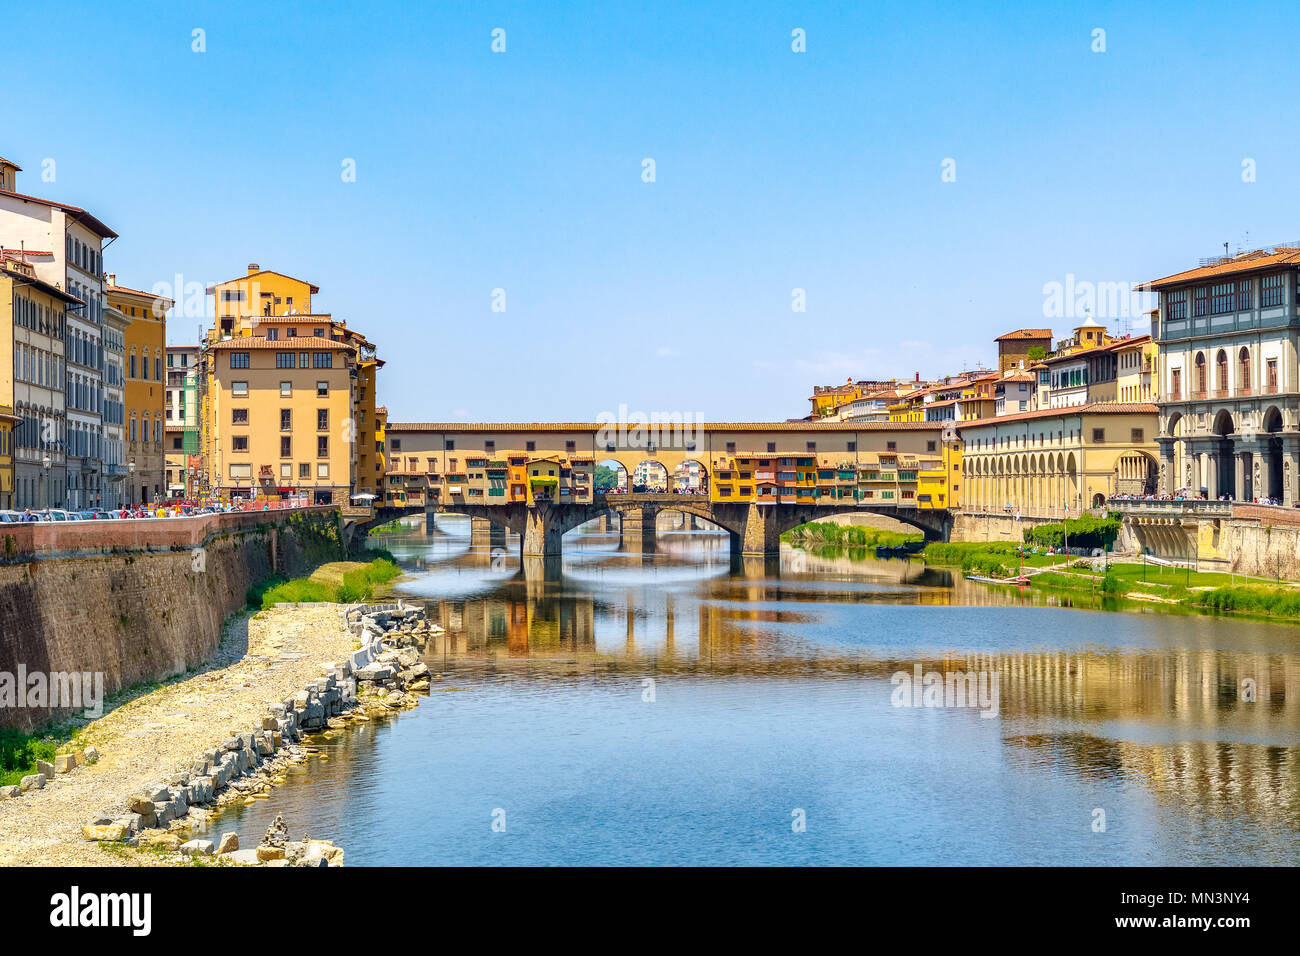 Ponte Vecchio (Old Bridge) over the Arno River in Florence, Italy against a cloudless sky - Stock Image